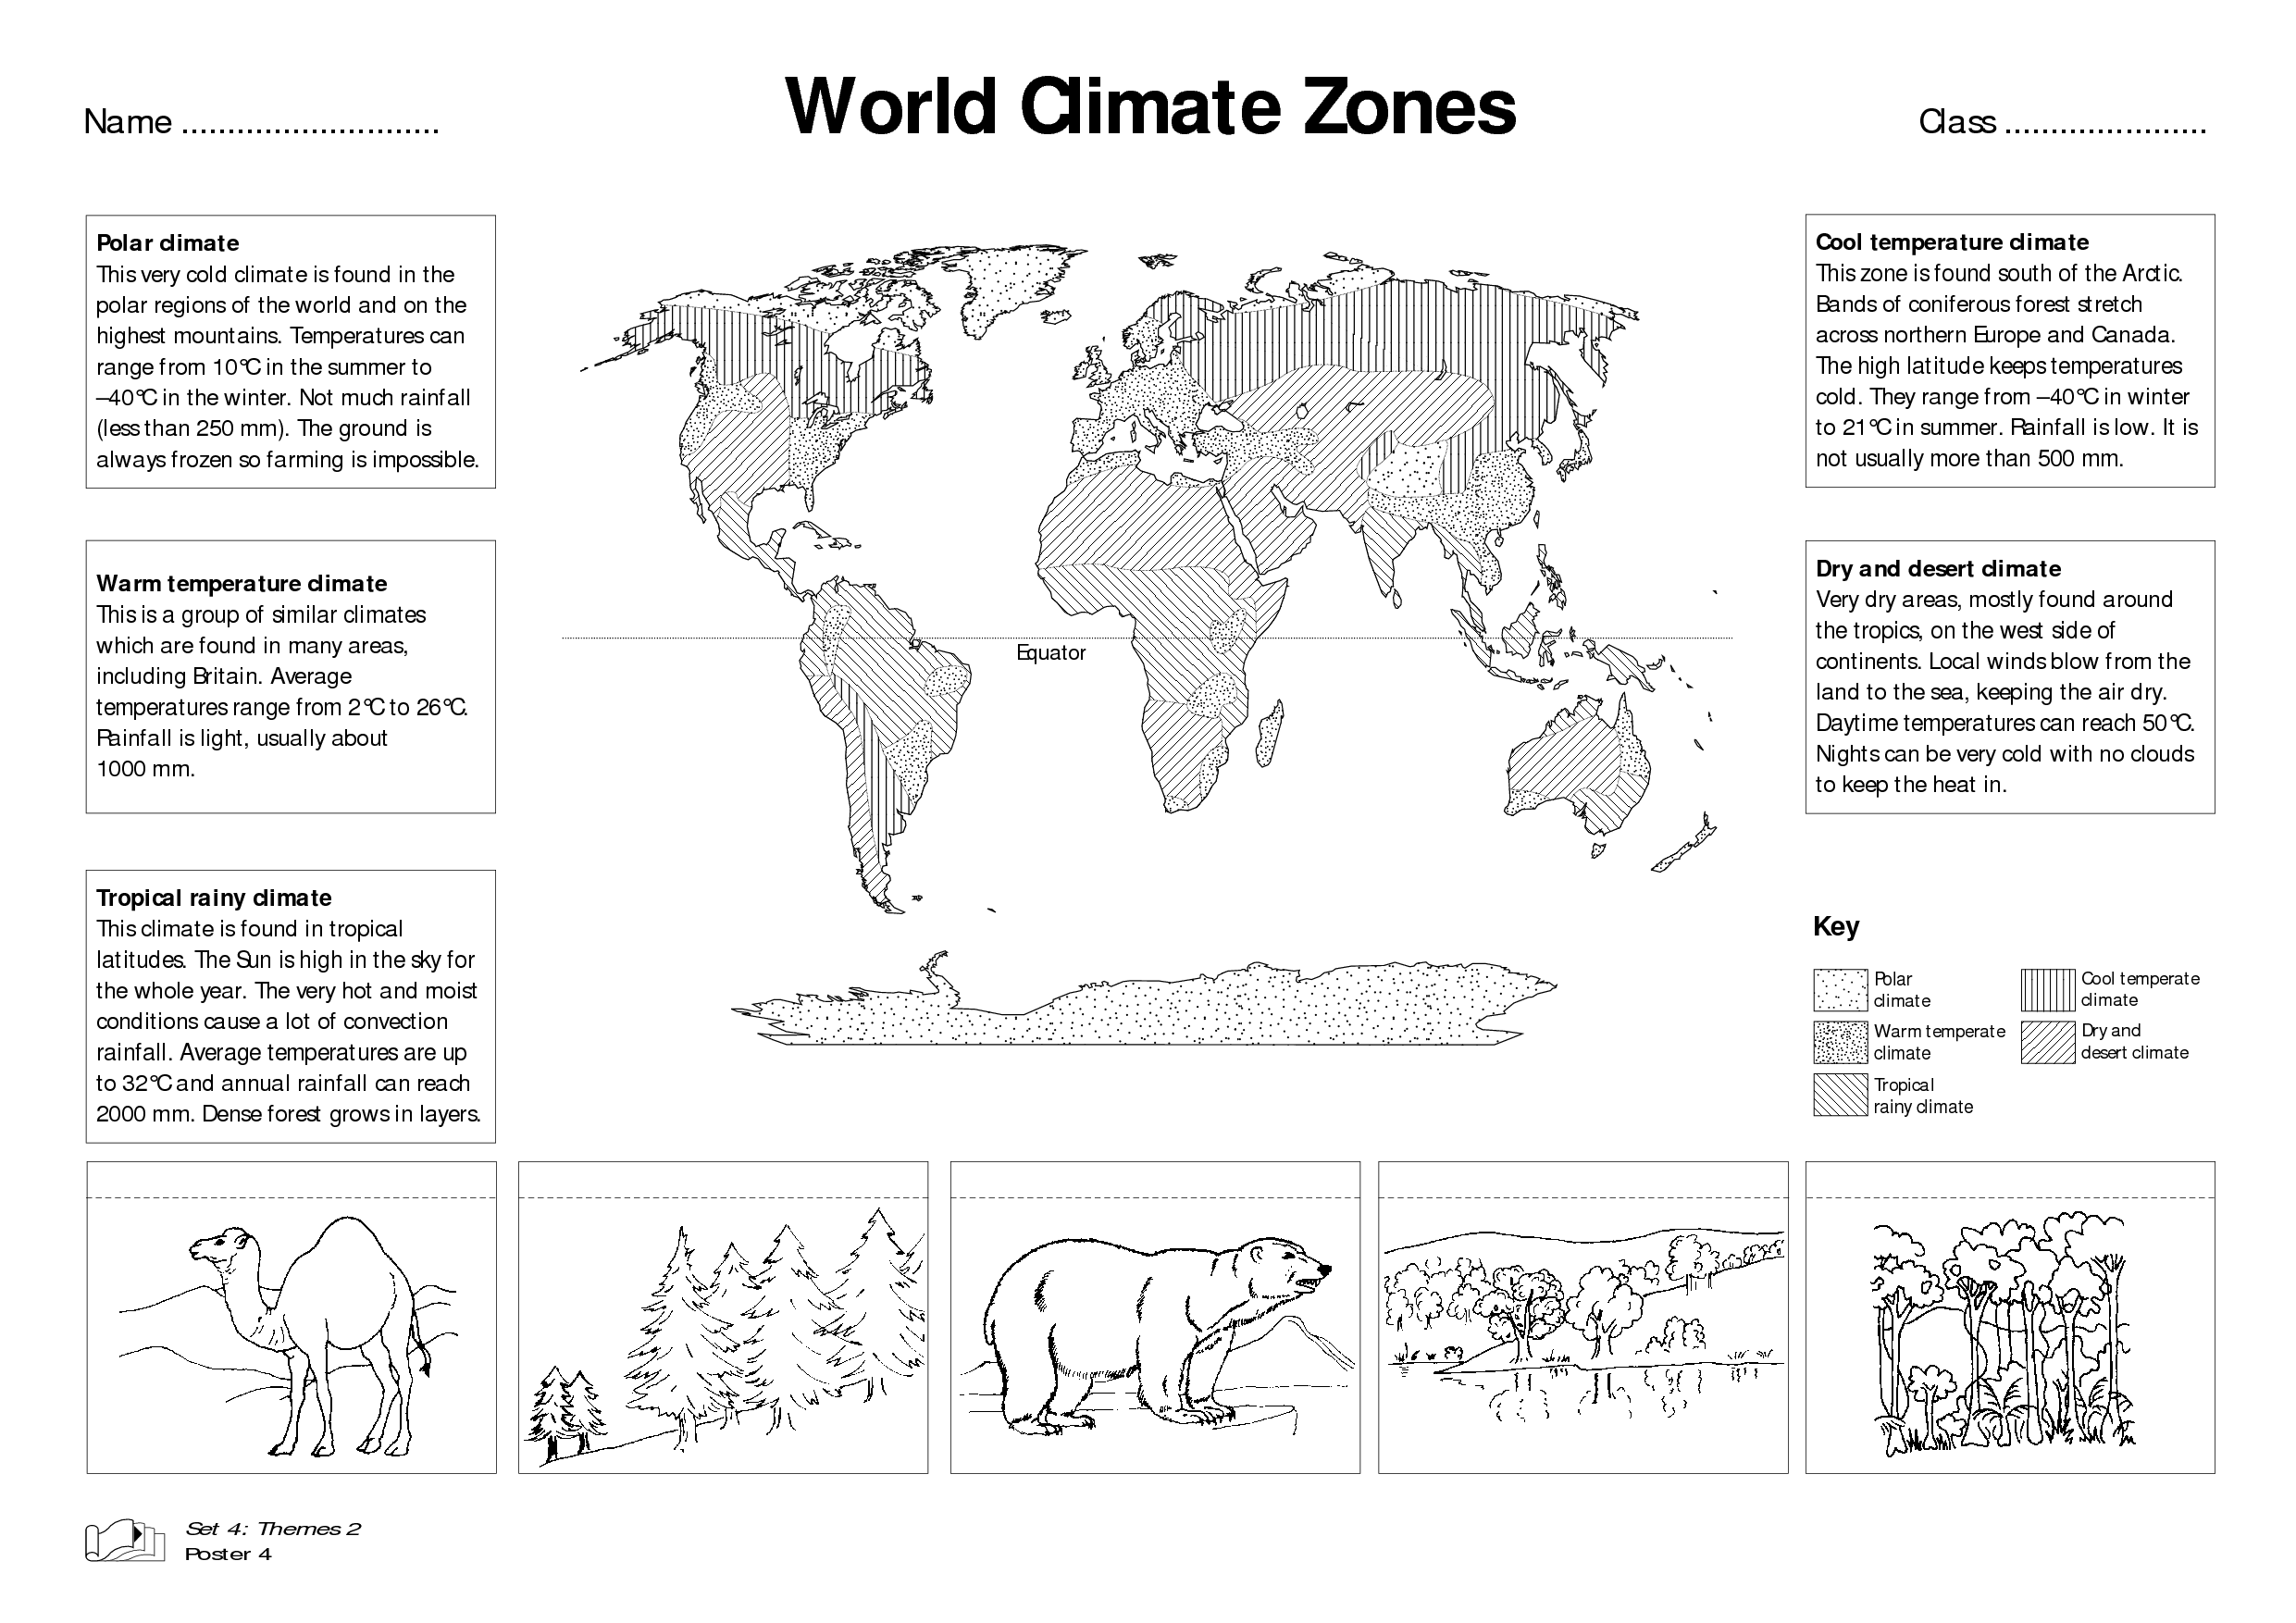 world climate zones for kids worksheets - Google Search   Weather worksheets [ 1754 x 2481 Pixel ]